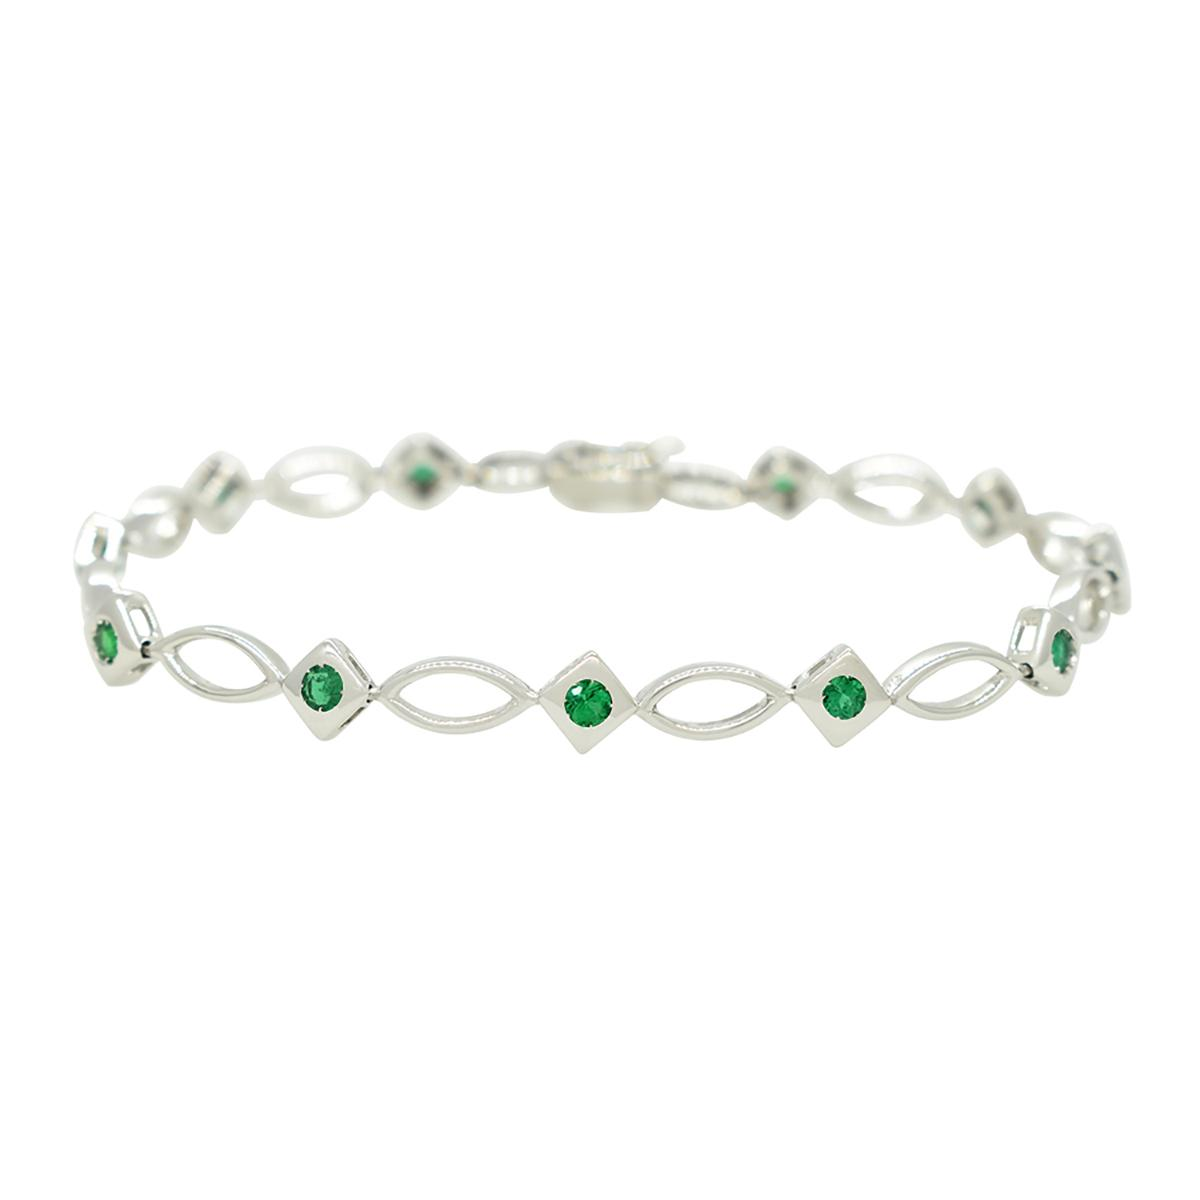 emerald-bracelet-in-18k-white-gold-with-11-round-cut-natural-emeralds